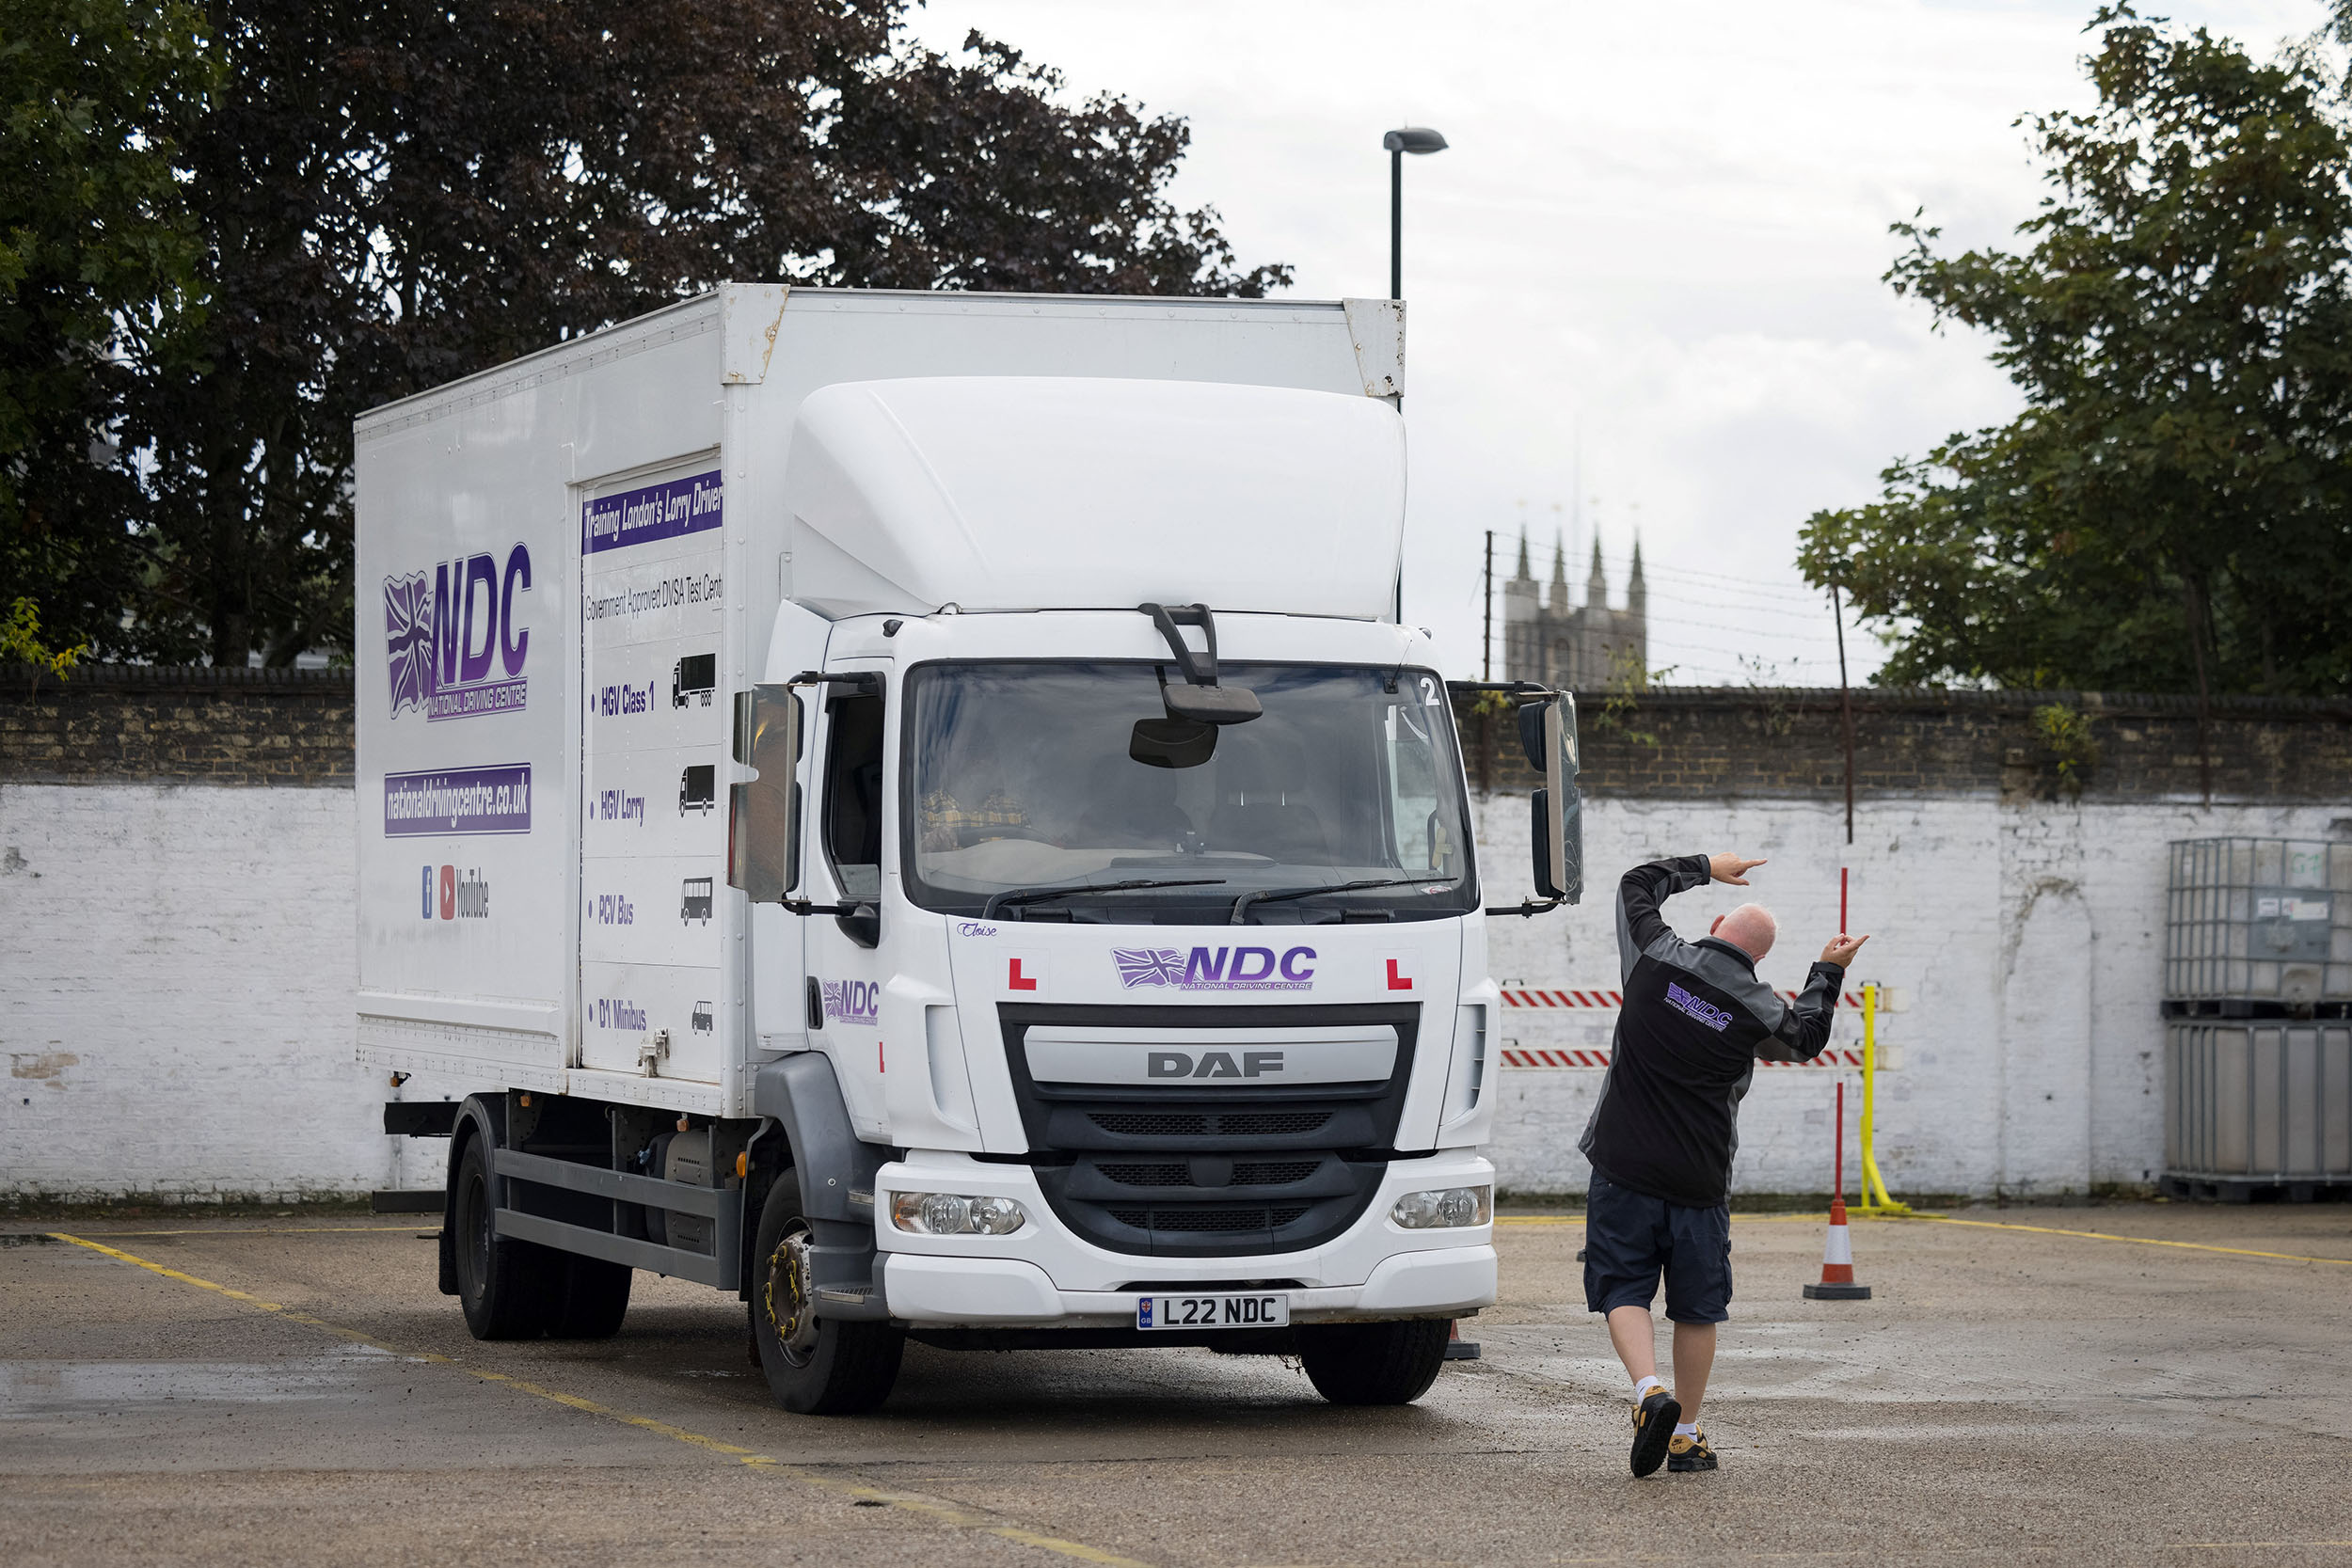 A HGV (Heavy Goods Vehicle) driving instructor (L) gives instructions to a learner lorry driver as he prepares to reverse a lorry at National Driving Centre in Croydon, south London on October 1, 2021. – The British government said last month it will simplify the procedure to qualify as a lorry driver to tackle widespread delivery problems hitting retail businesses. Hauliers and business associations have blamed empty shelves in shops on an exodus of EU national drivers due to Brexit as well as virus-related restrictions.